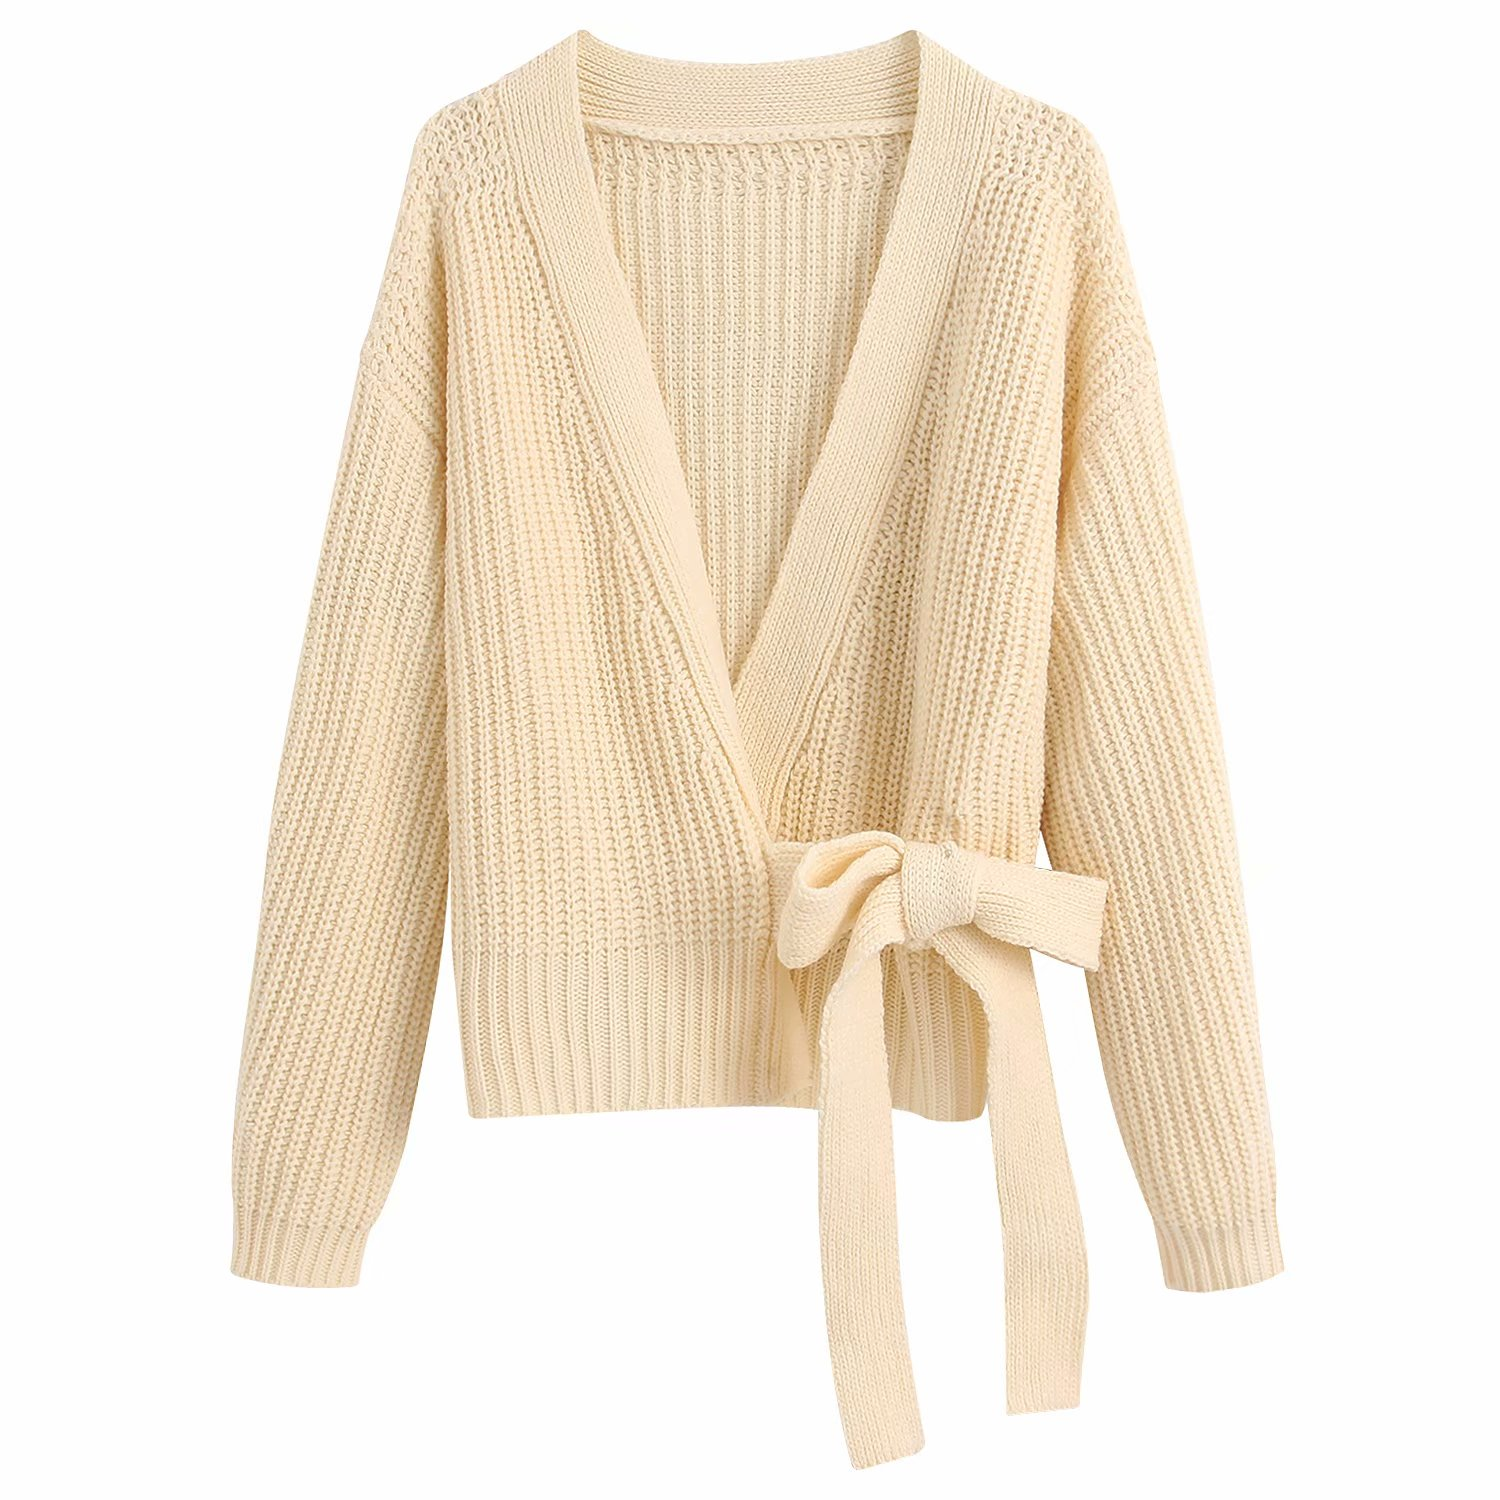 2020 New Women Sweater Gray Beige Pink Solid Kinitted Cardigan Sashes V Neck Sweater Casual Loose Style Female Clothes